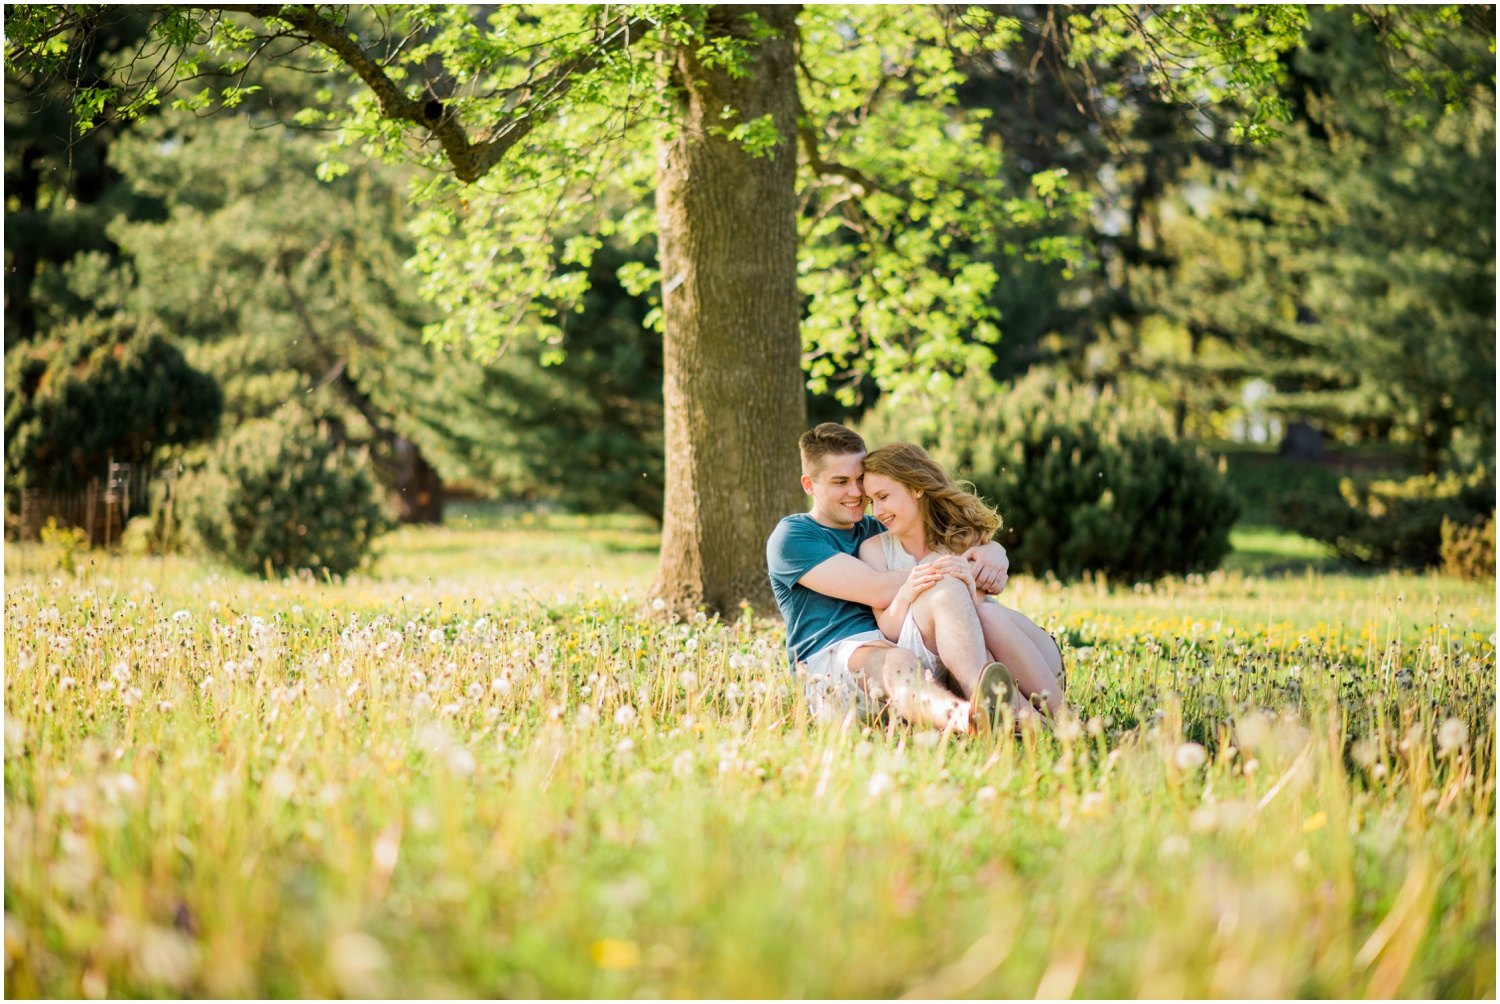 UW_Madison_Arboretum_Madison_WI_Engagement_Photos_Sydney_and_Tim_0006.jpg